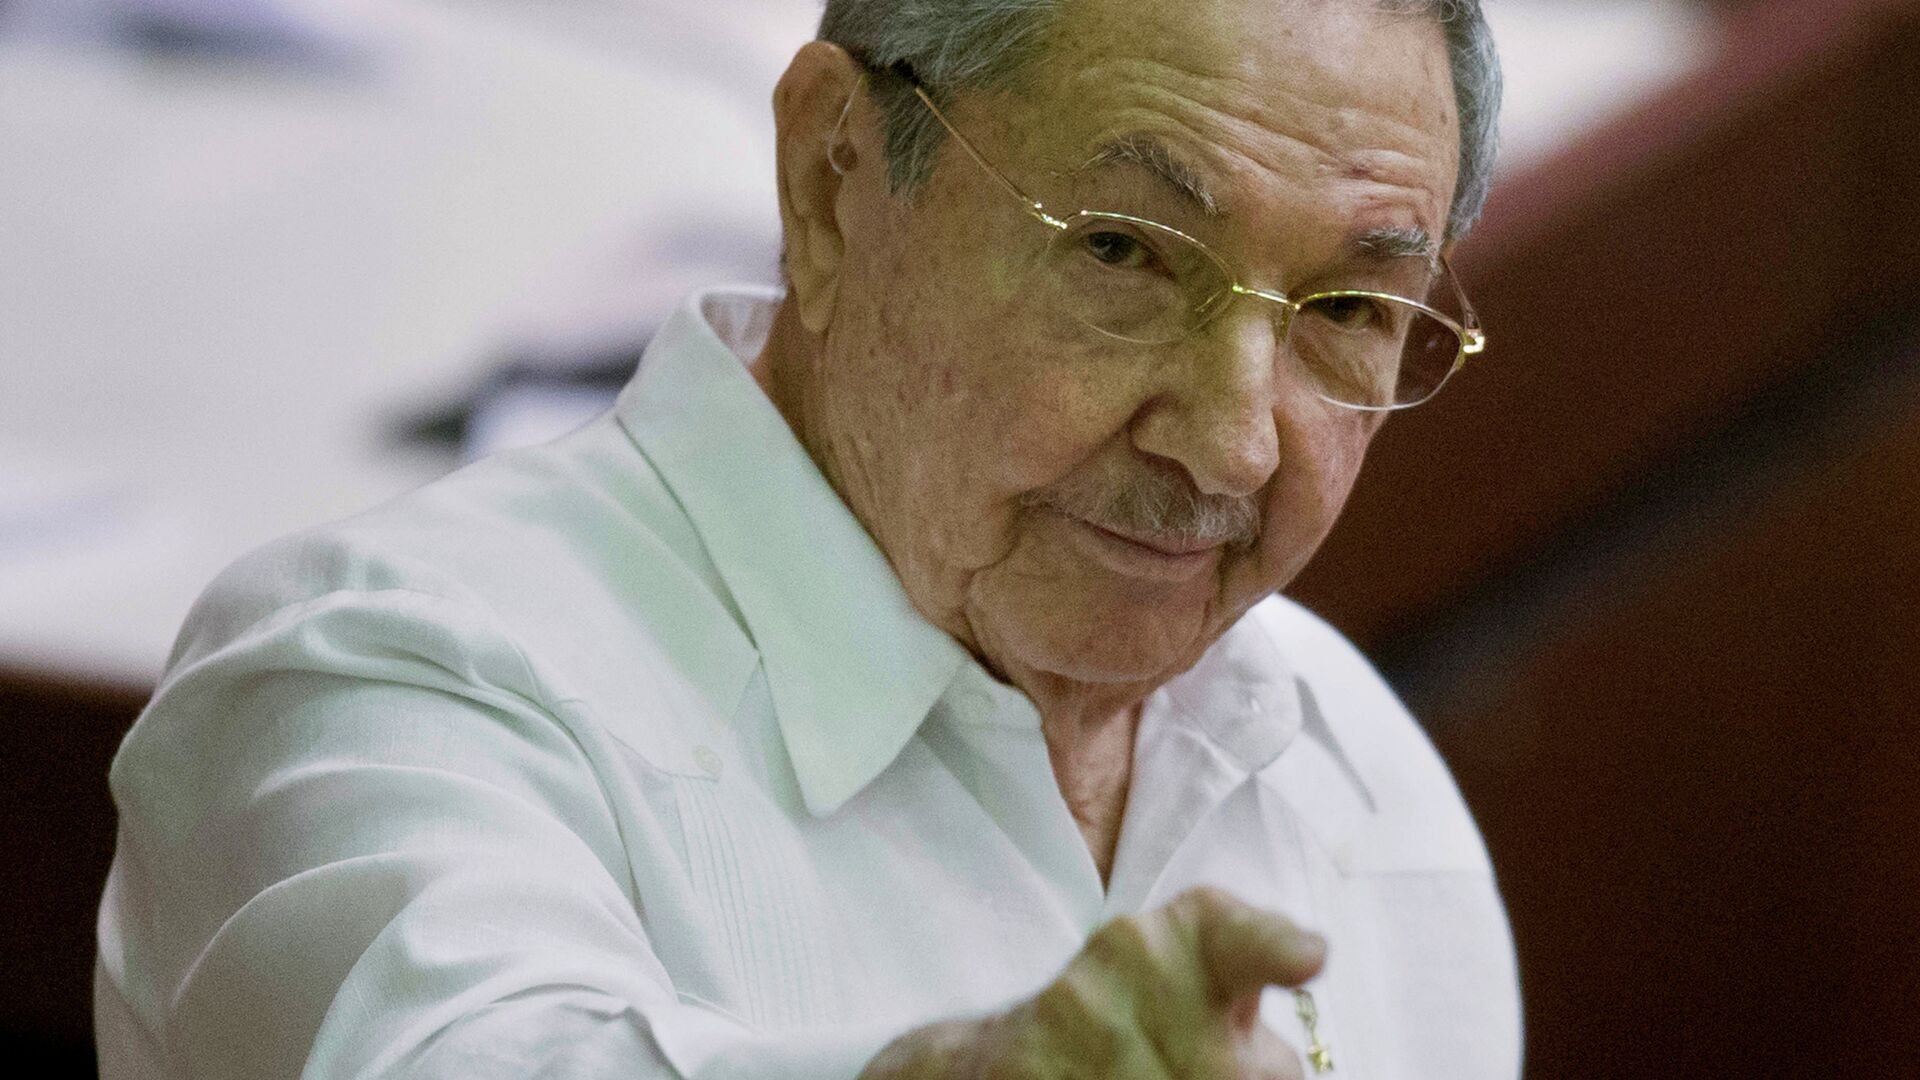 Cuba's President Raul Castro points to the press during the closing of the legislative session at the National Assembly in Havana - Sputnik Mundo, 1920, 16.04.2021